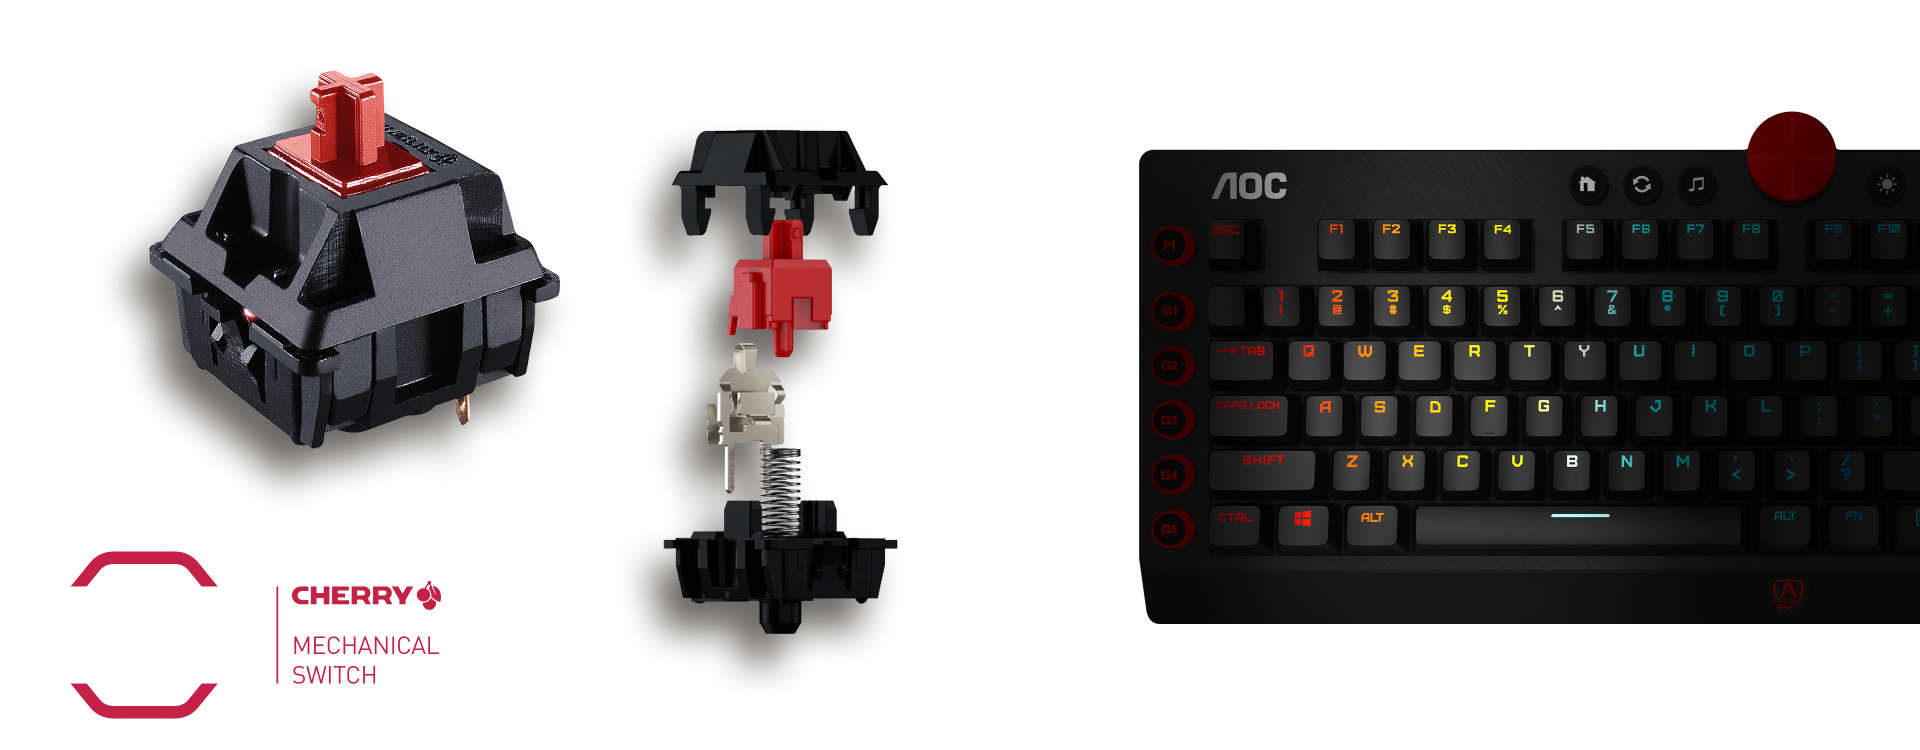 AGON_AGK700_FV_FW_CHERRY_SWITCHES_RED_FRONT.png